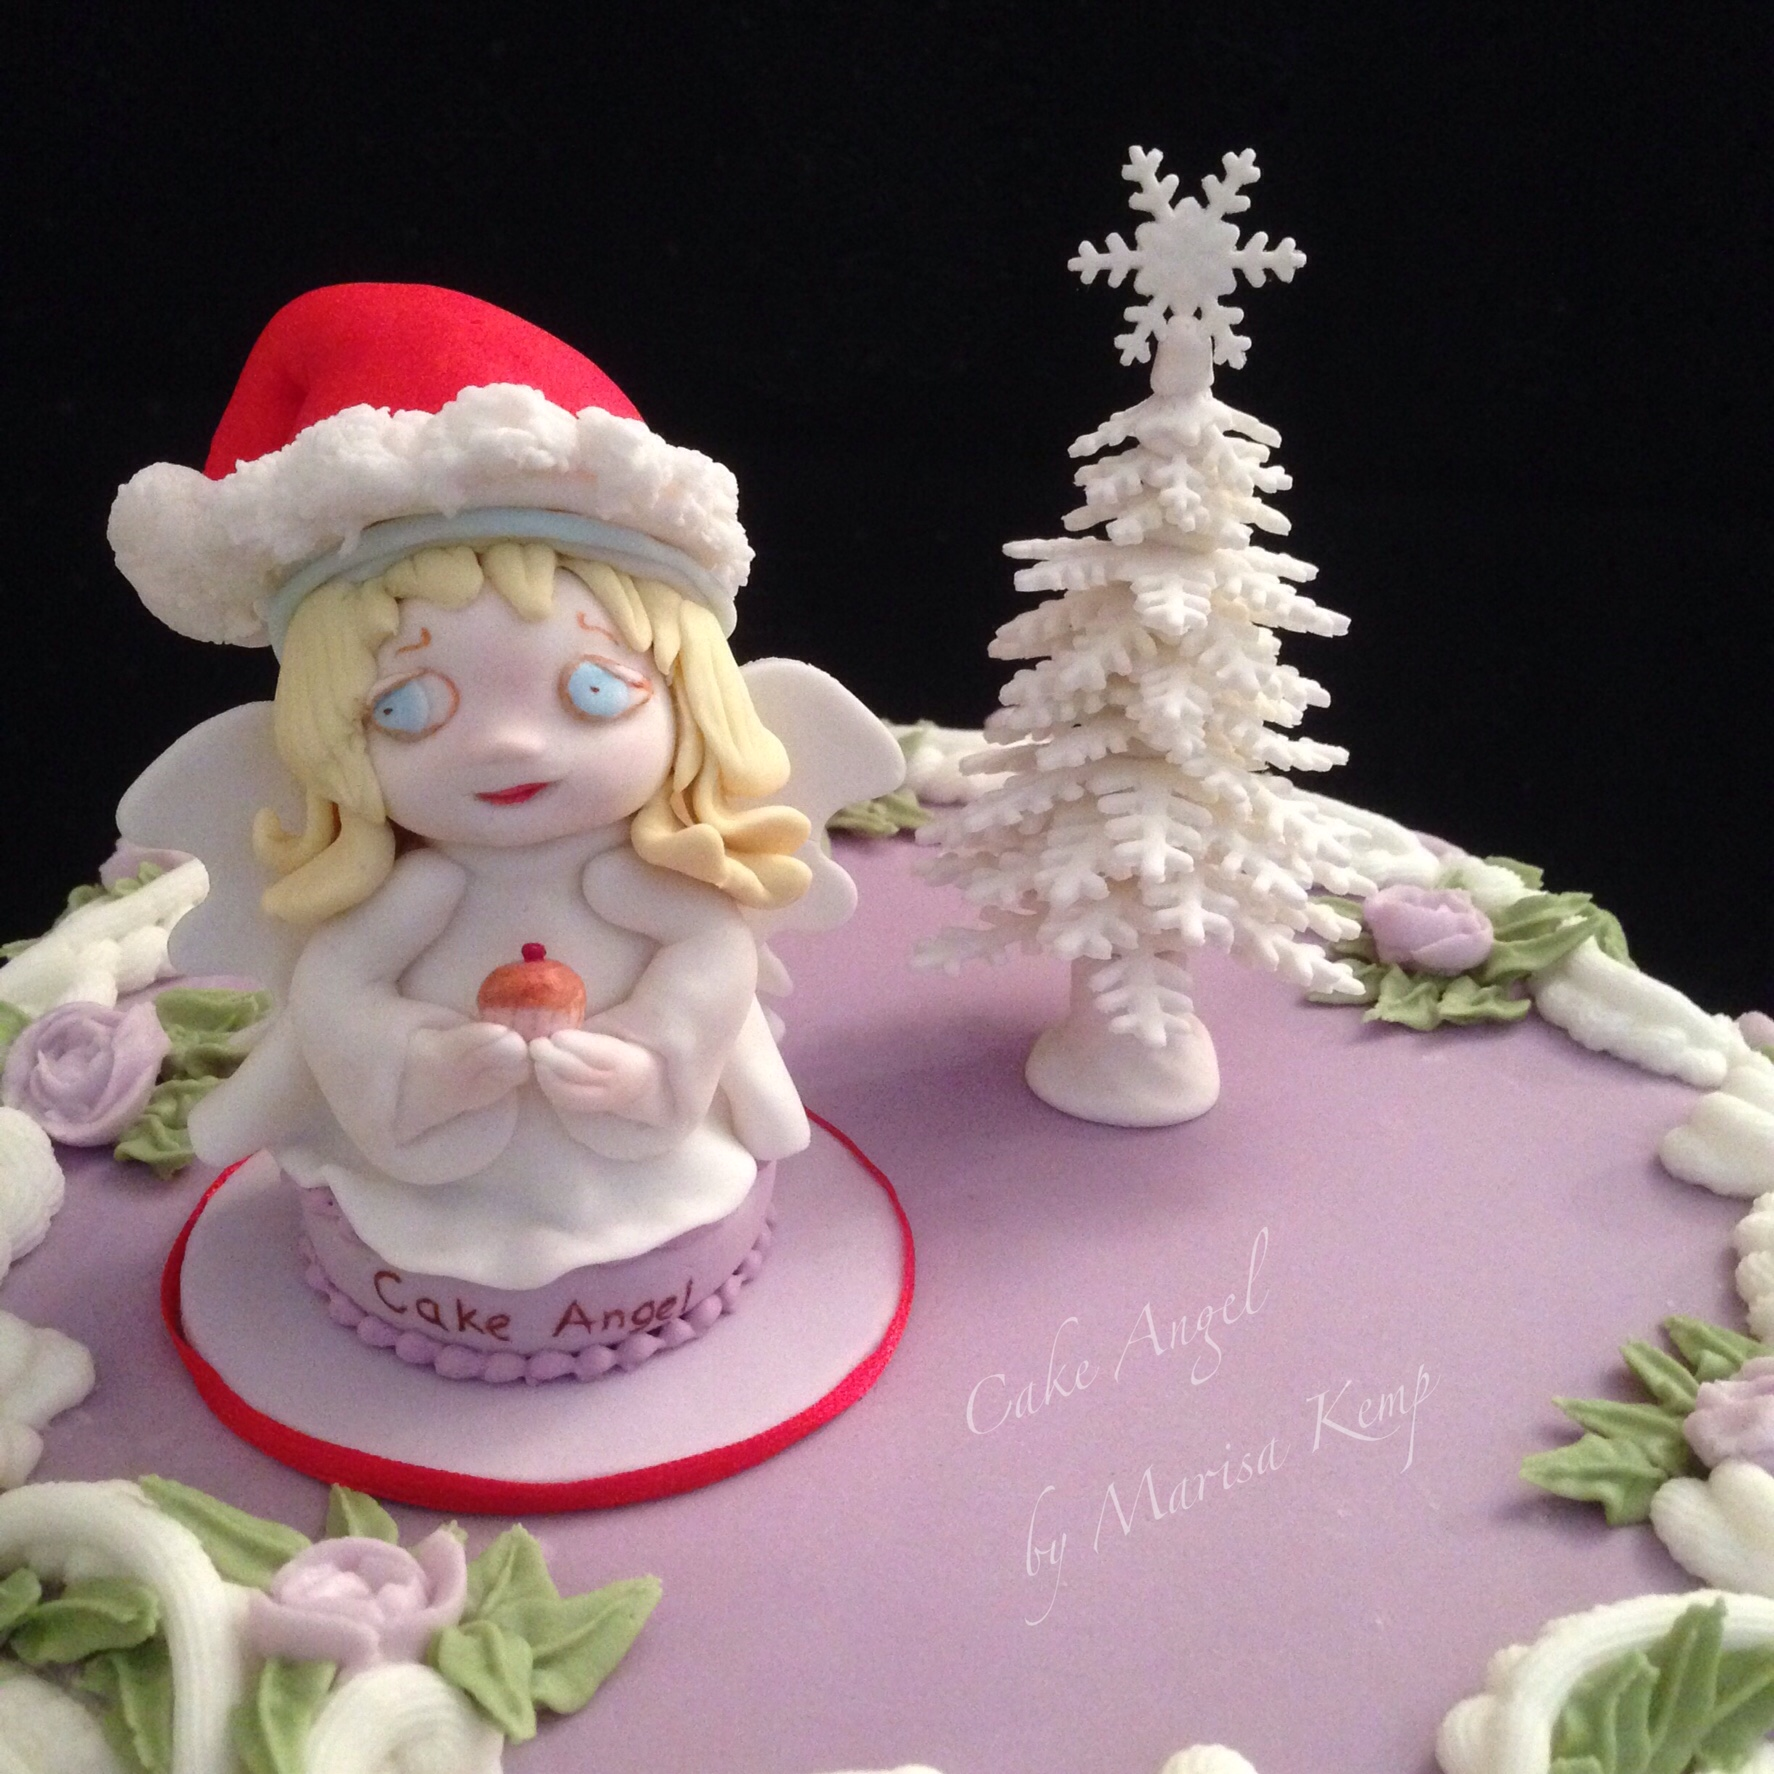 Cake Angel Christmas toppers